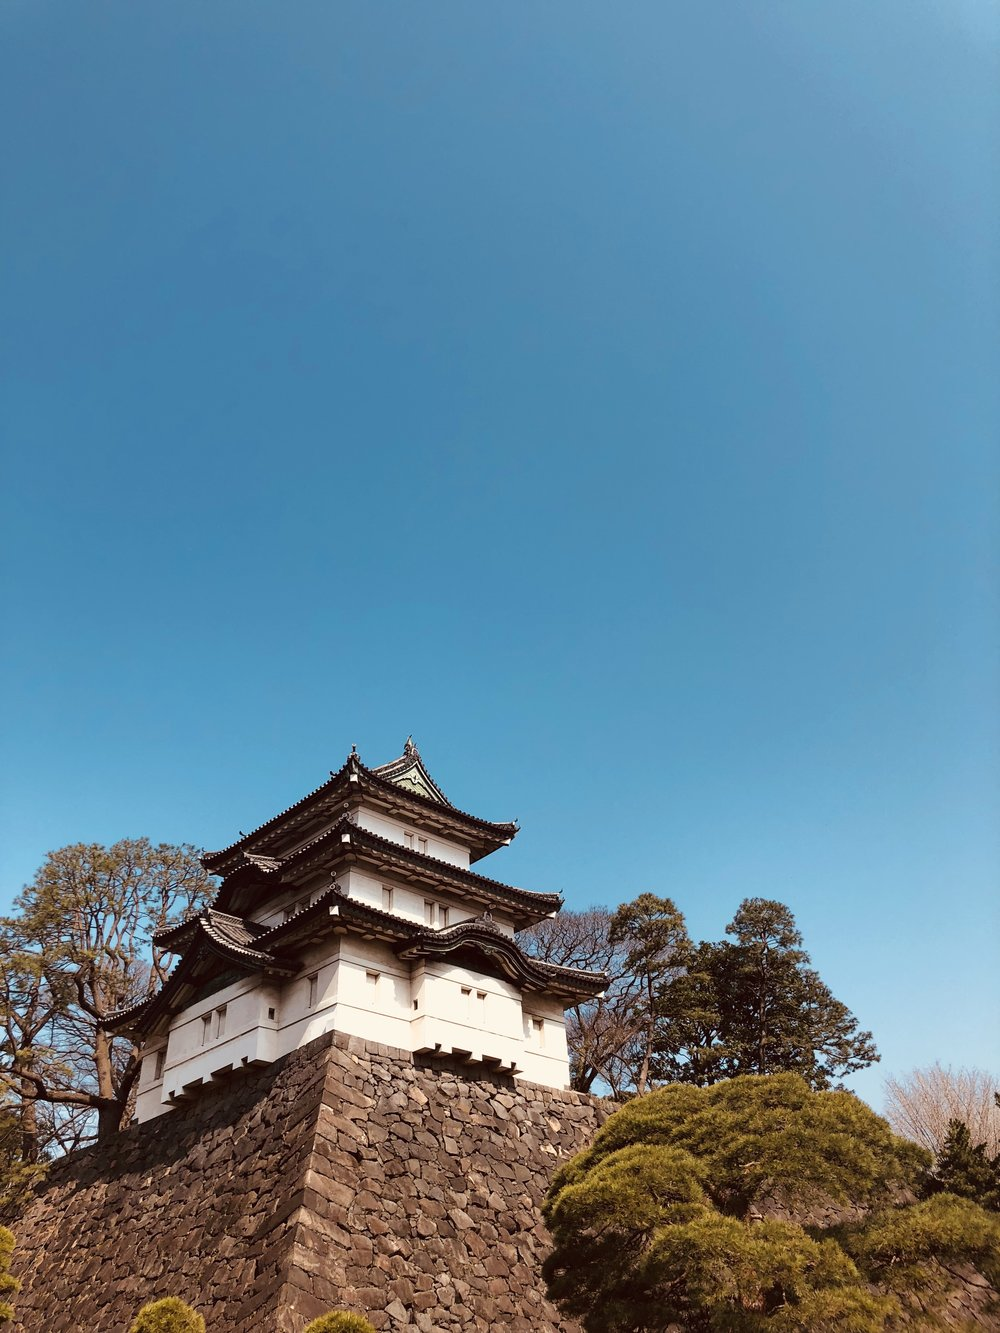 One of the oldest interior buildings on the grounds of the Imperial Palace